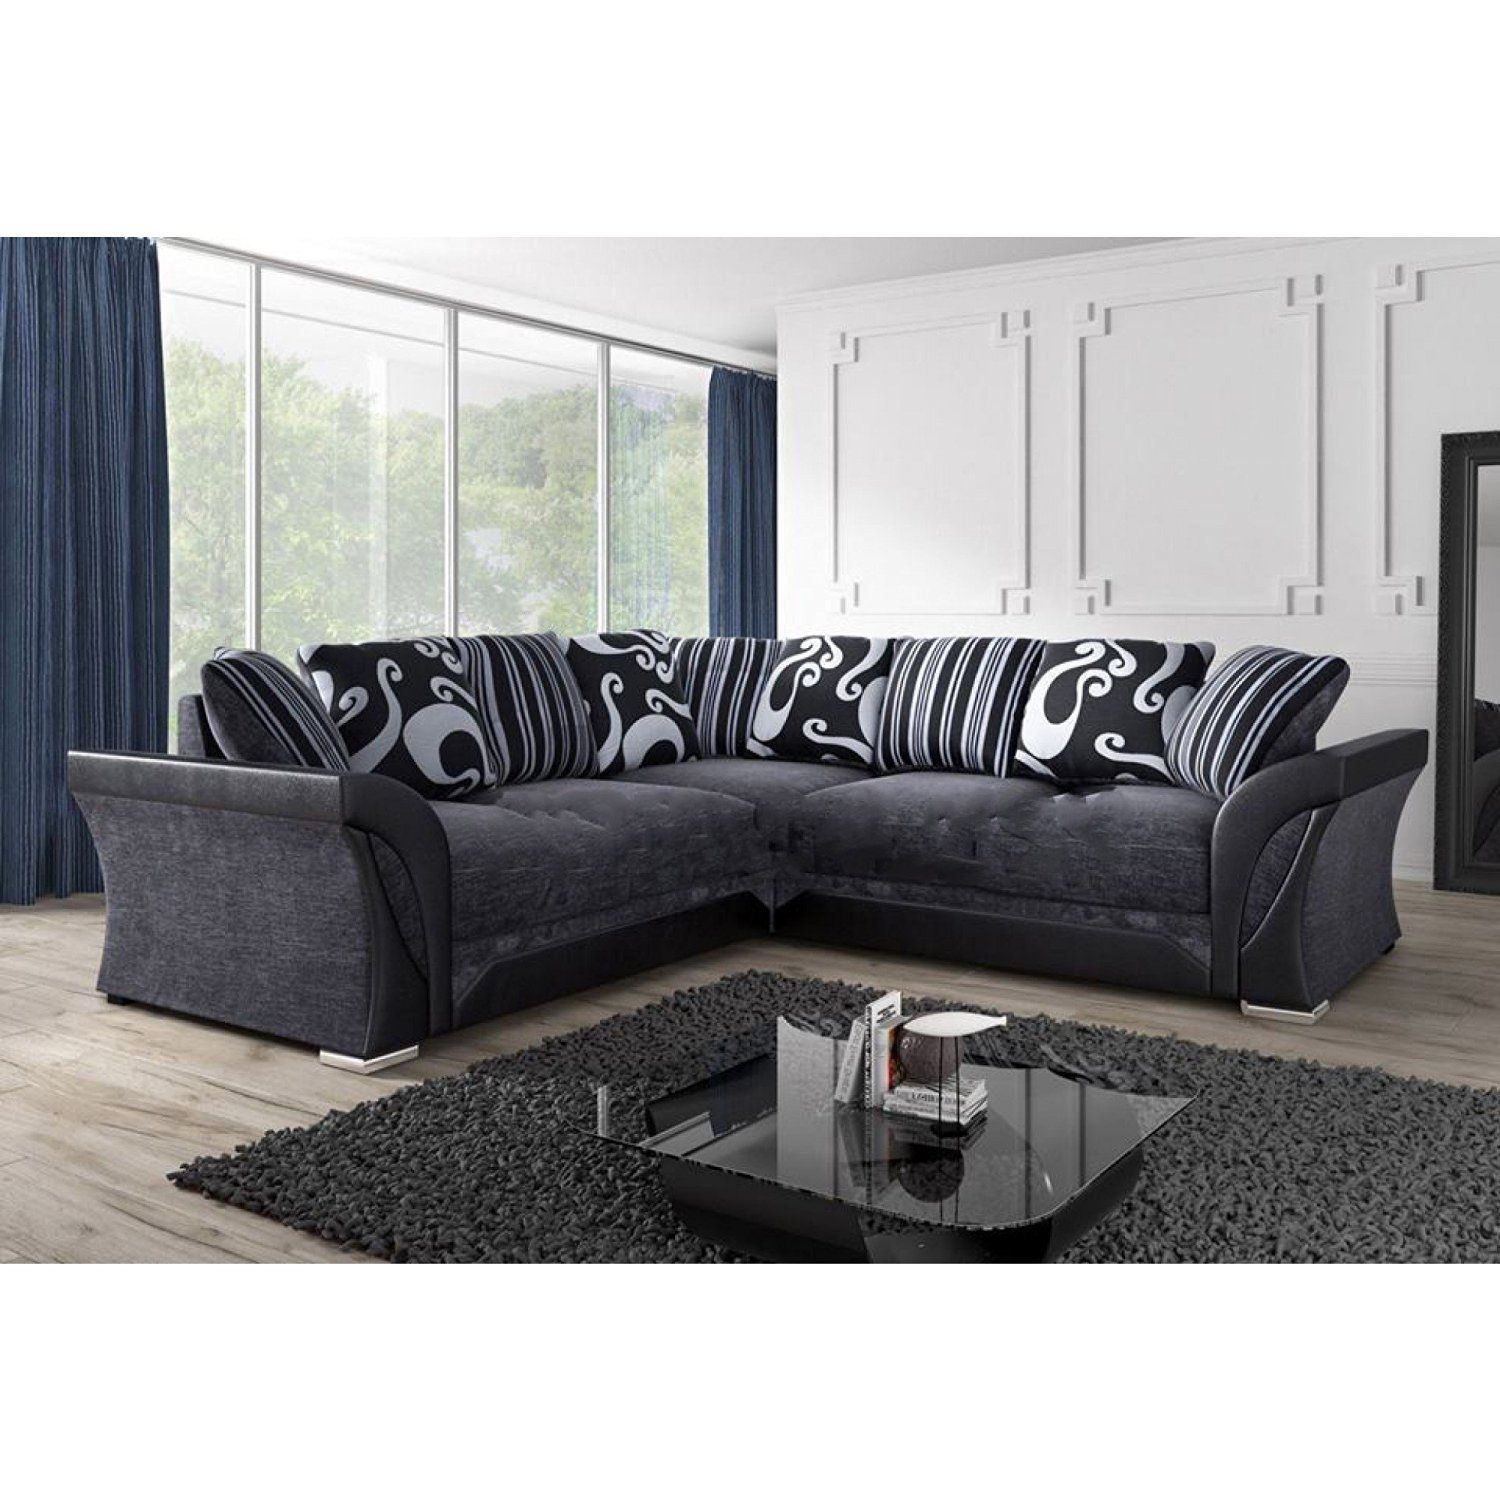 Awesome New Farrow Leather Chenille Fabric Corner Sofa In Black Caraccident5 Cool Chair Designs And Ideas Caraccident5Info